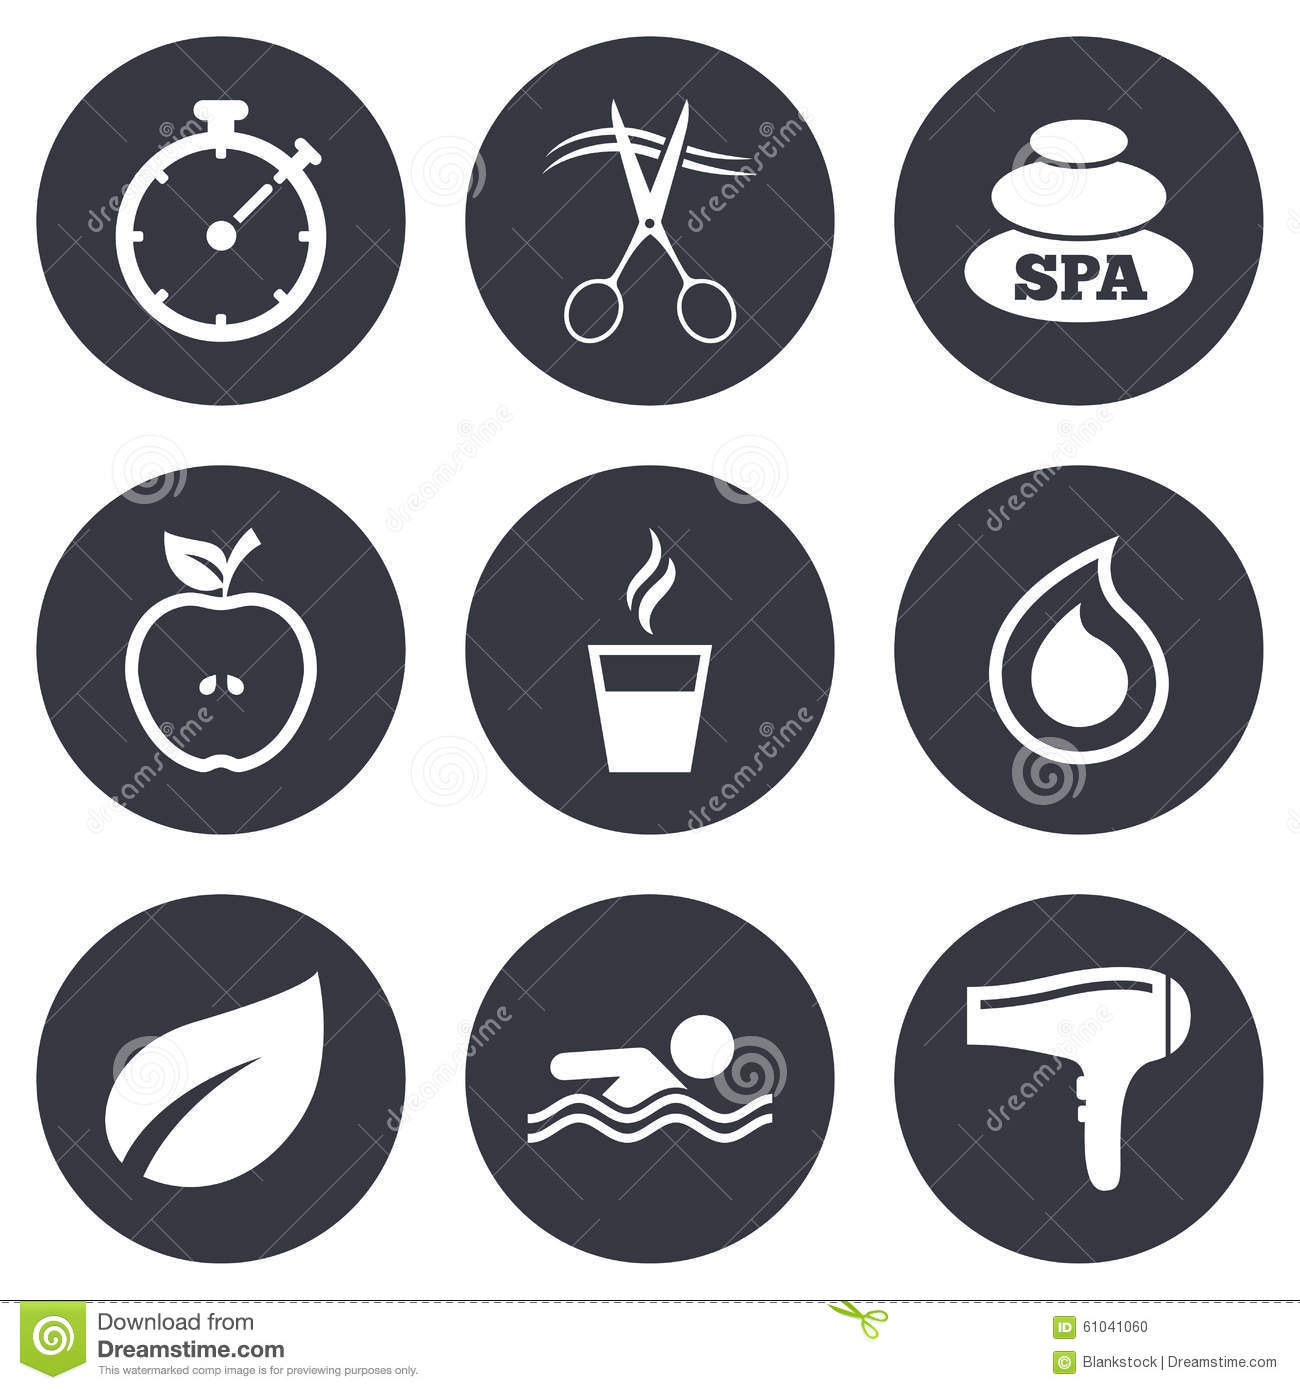 Spa hairdressing icons swimming pool sign stock vector spa hairdressing icons swimming pool sign biocorpaavc Choice Image